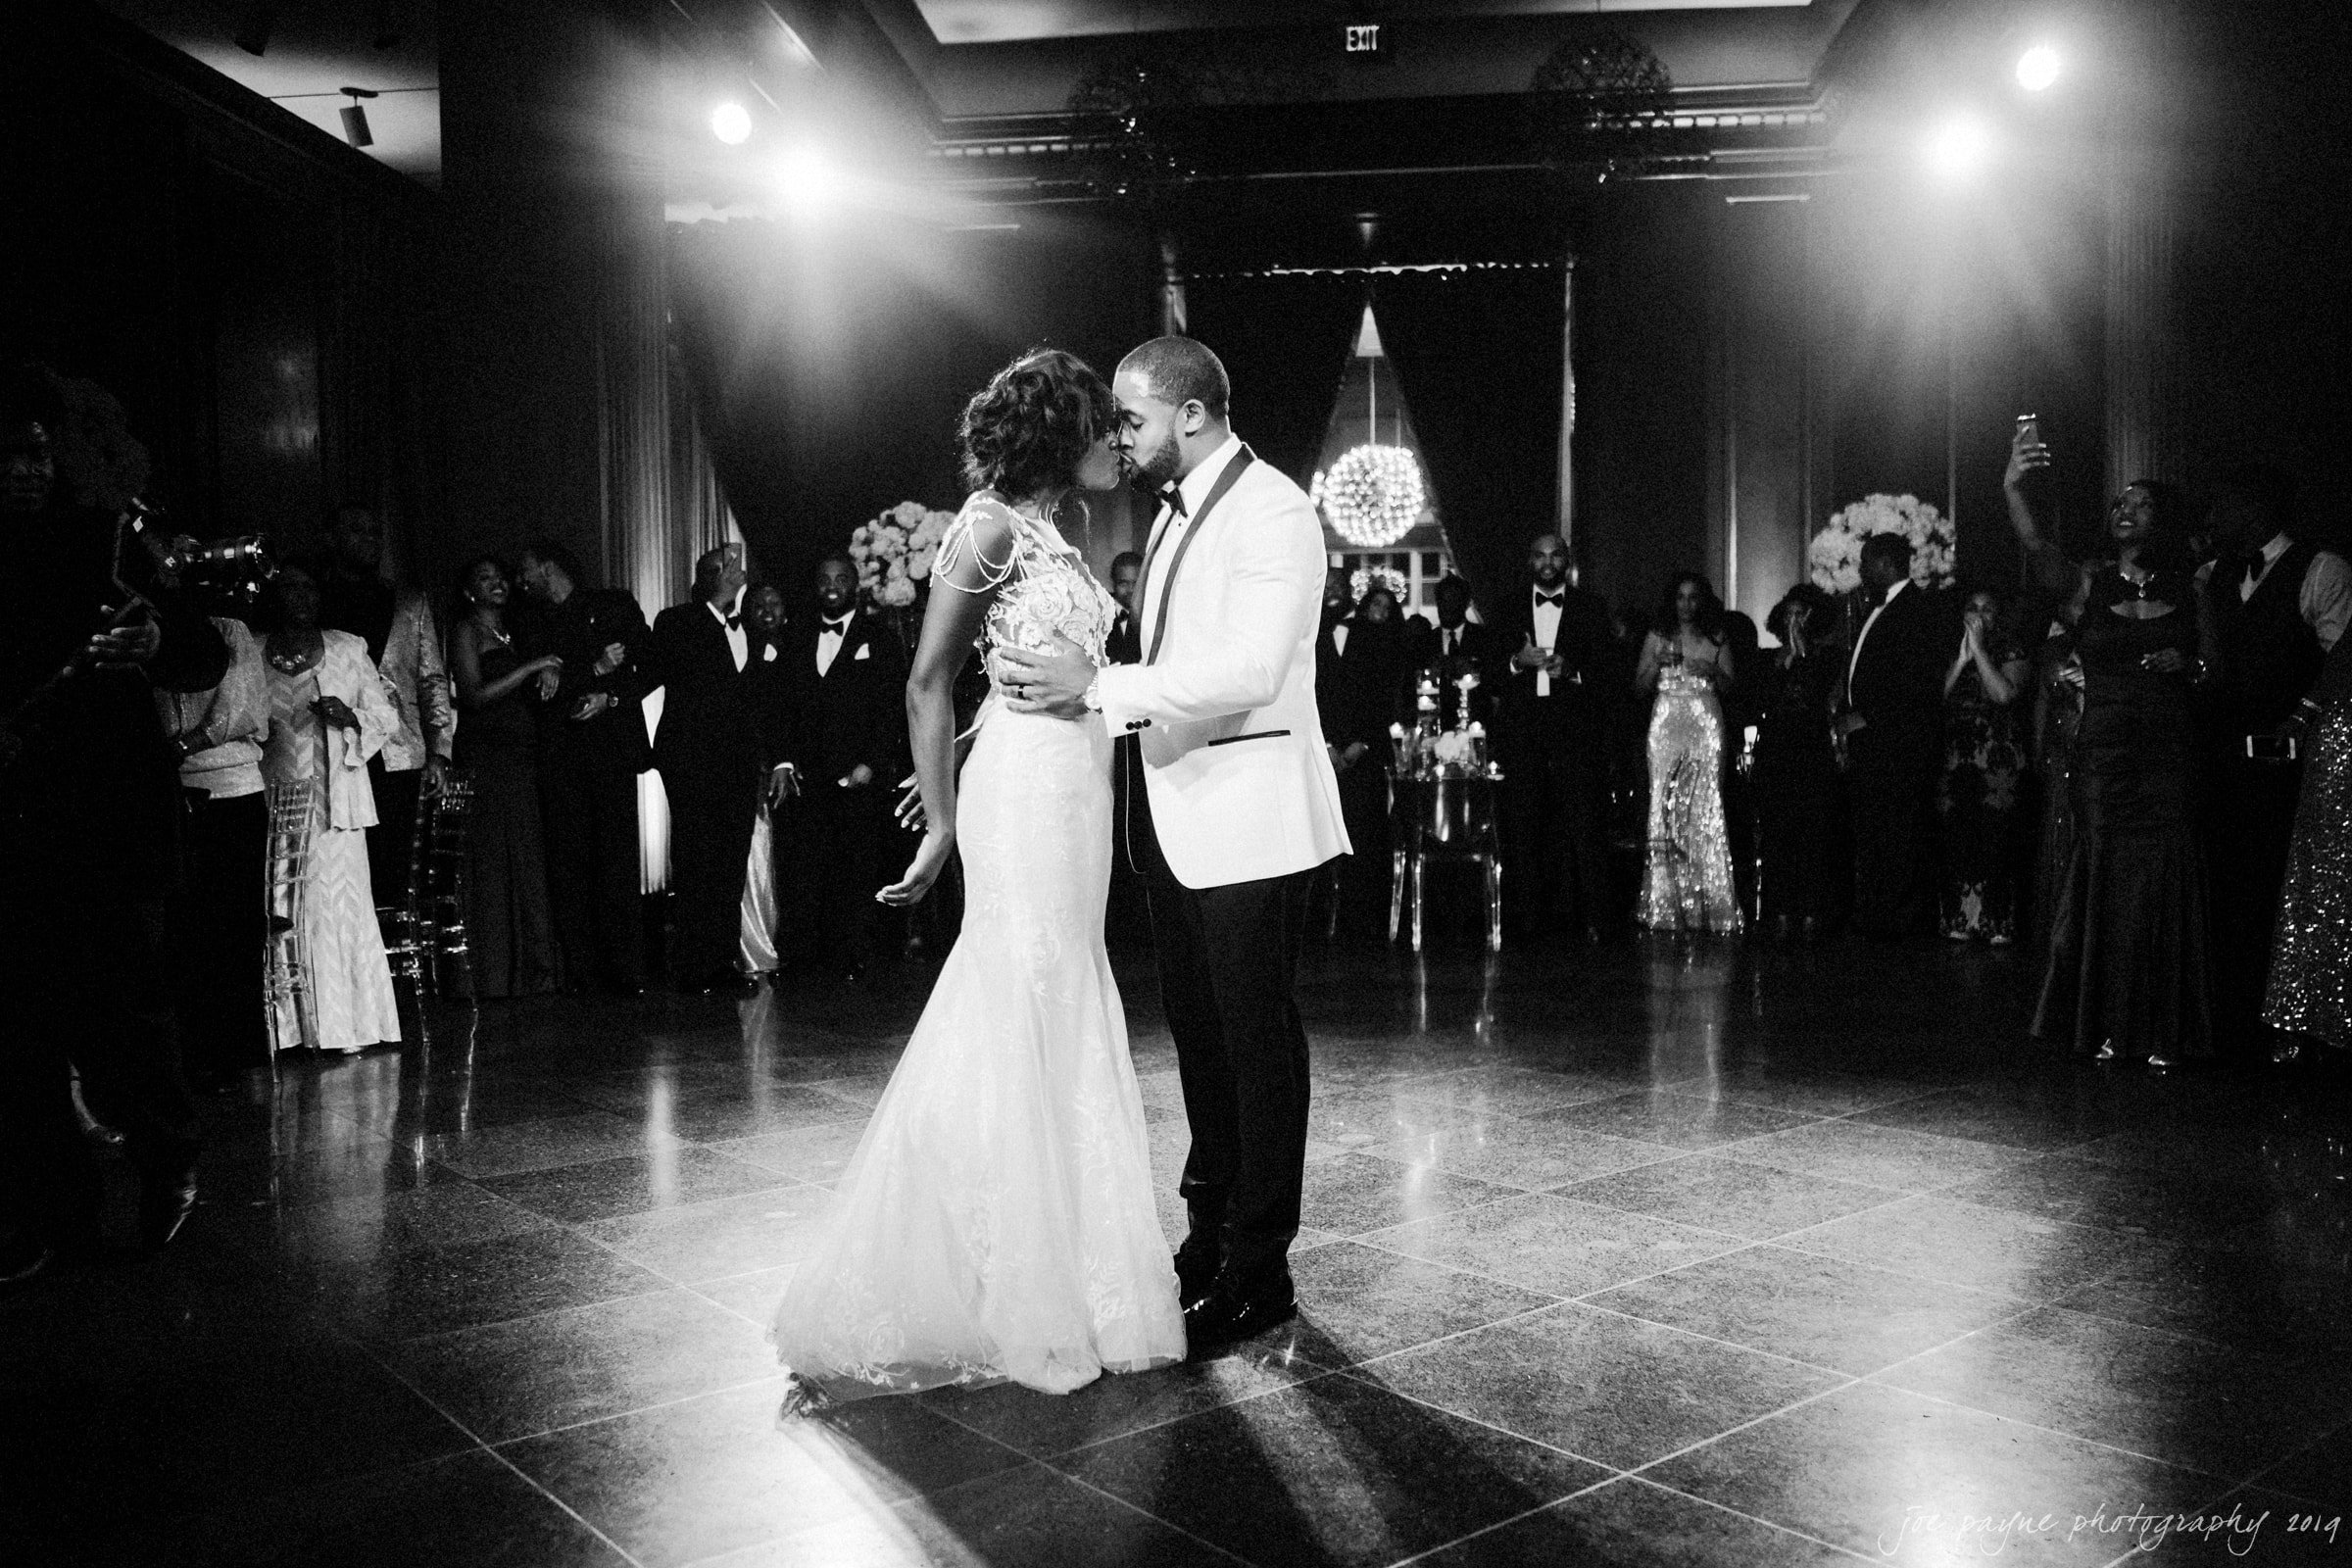 21c museum hotel durham wedding – kortne & terry